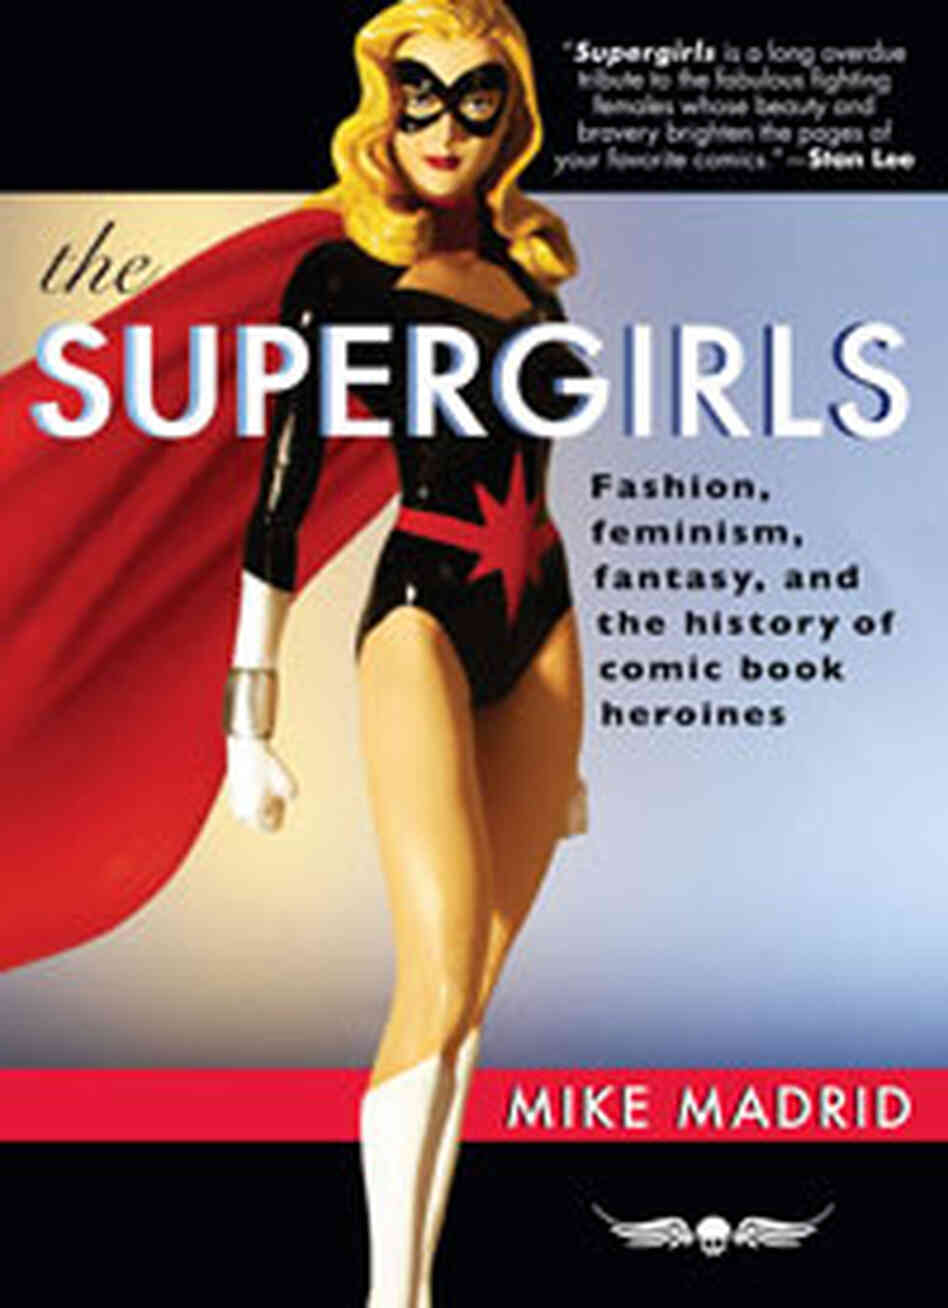 'The Supergirls'